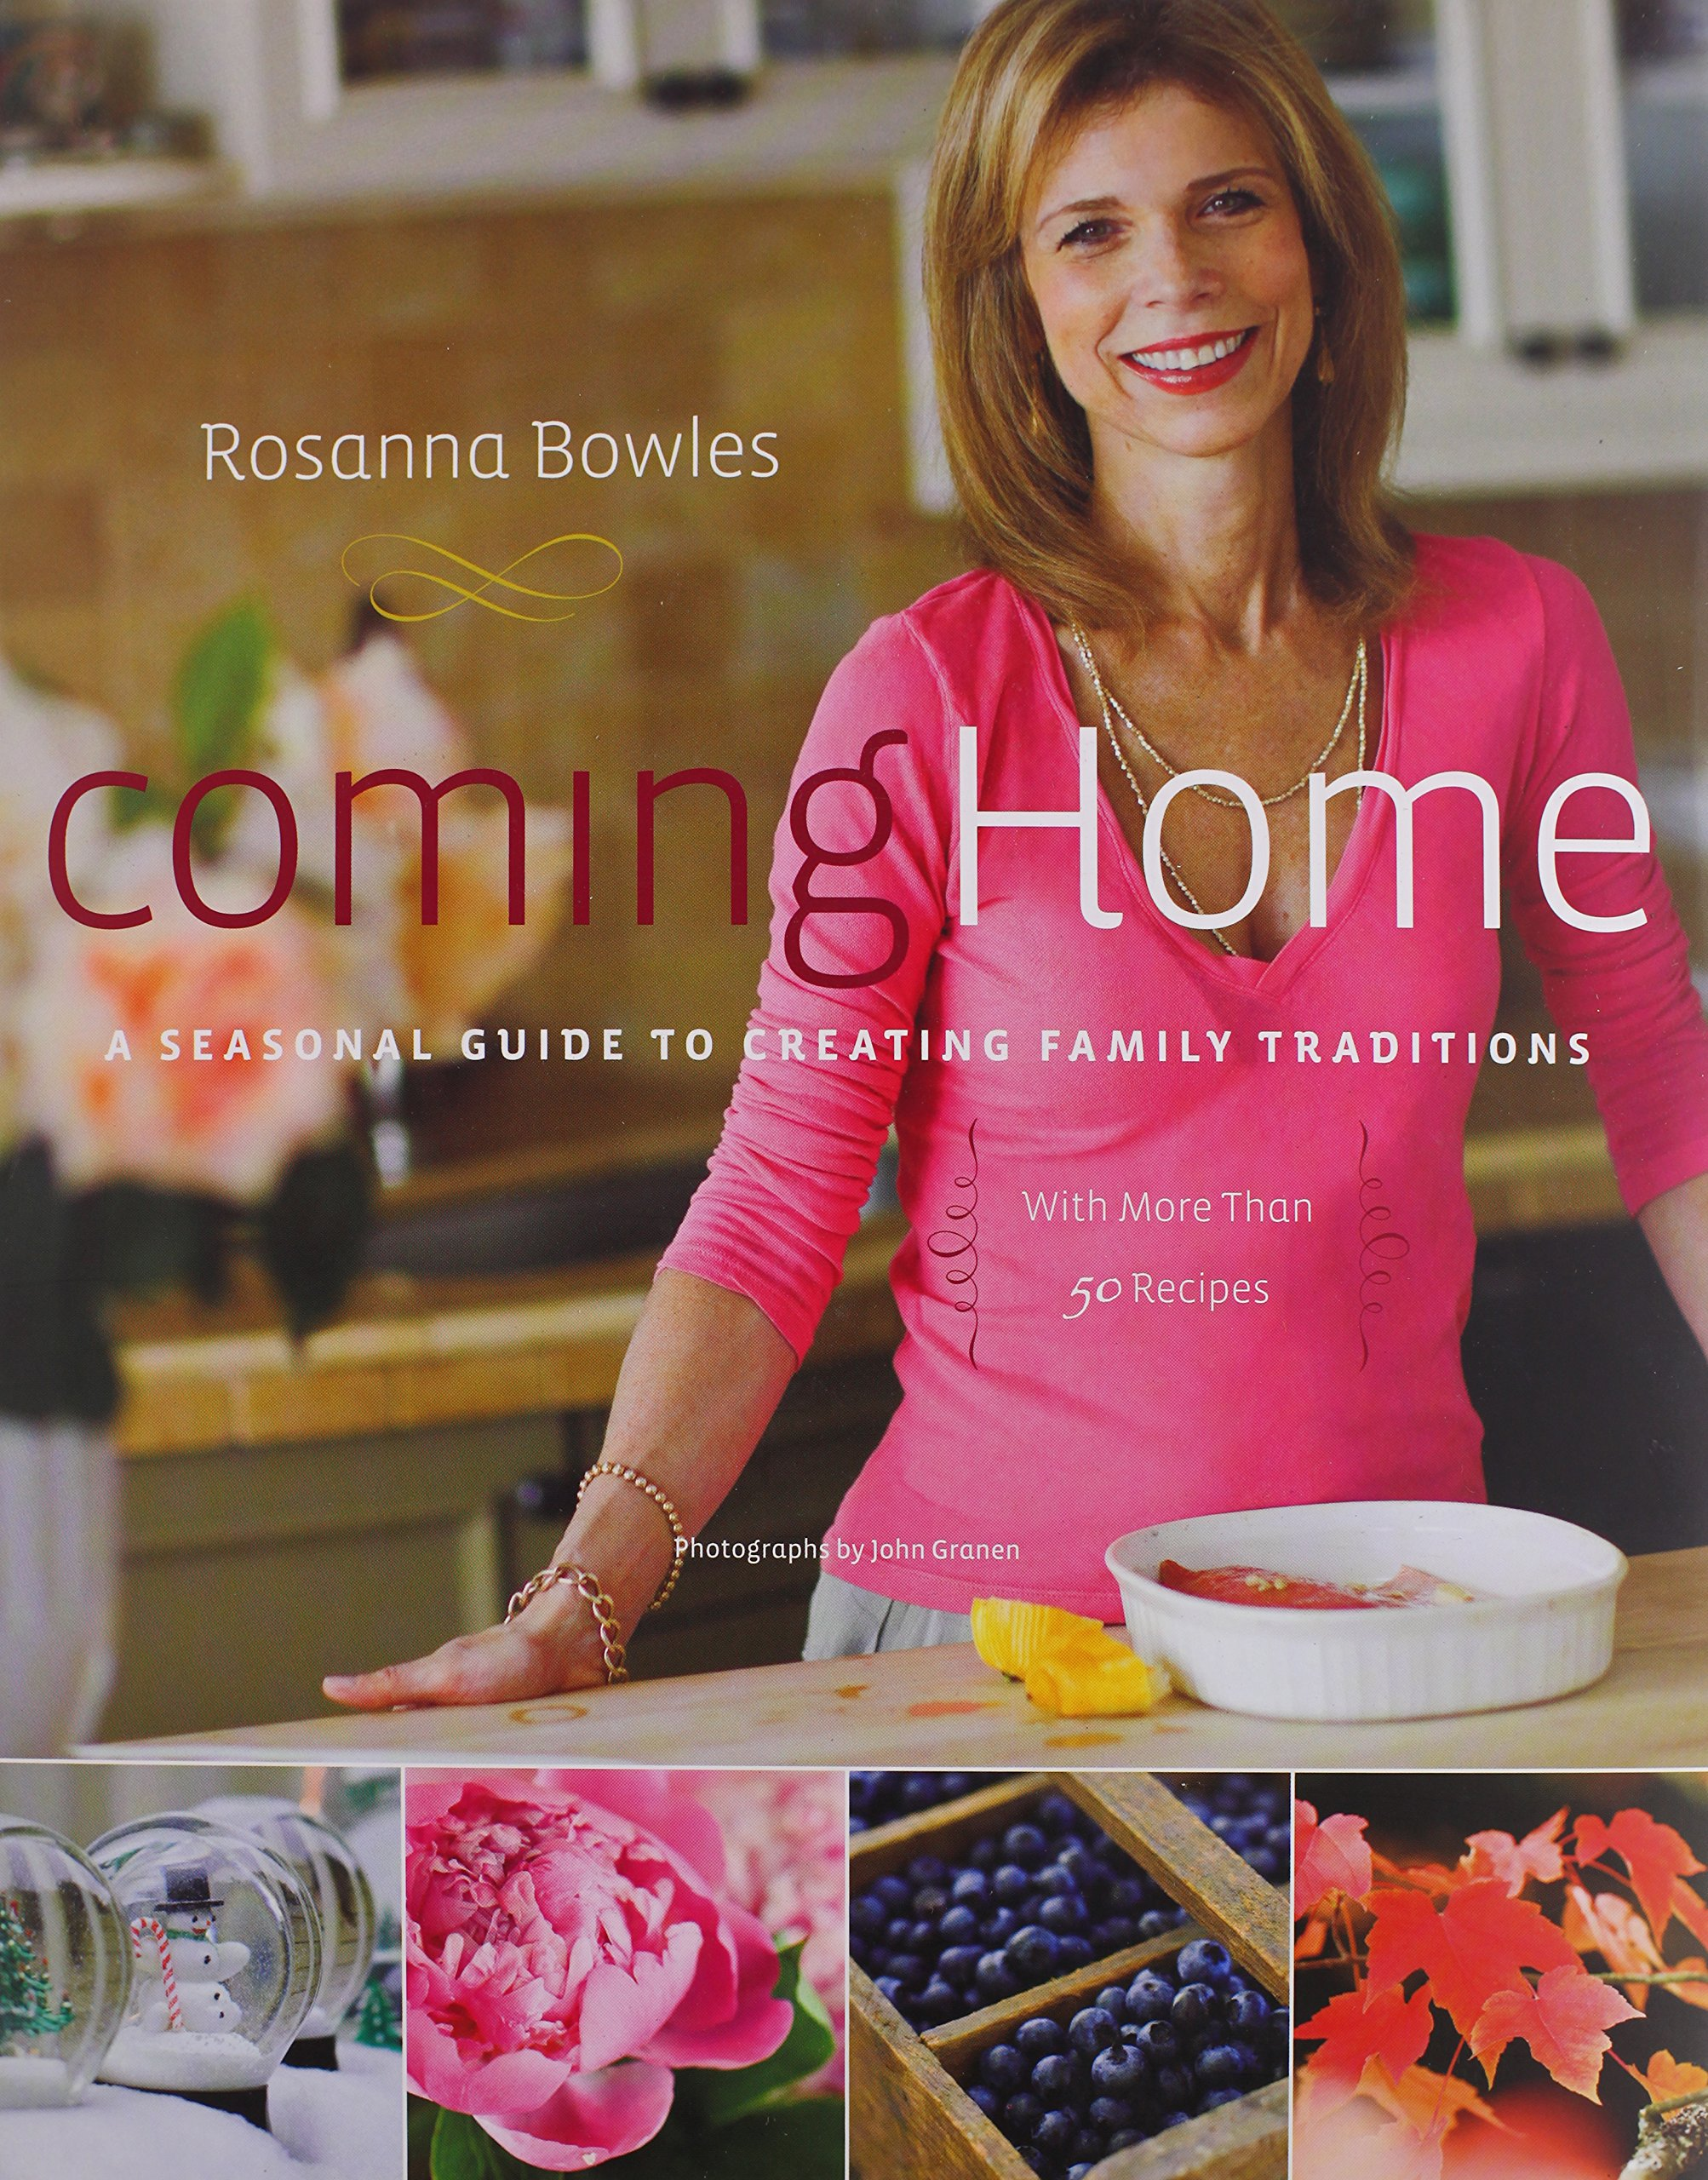 Coming Home: A Seasonal Guide to Creating Family Traditions / with More Than 50 Recipes PDF